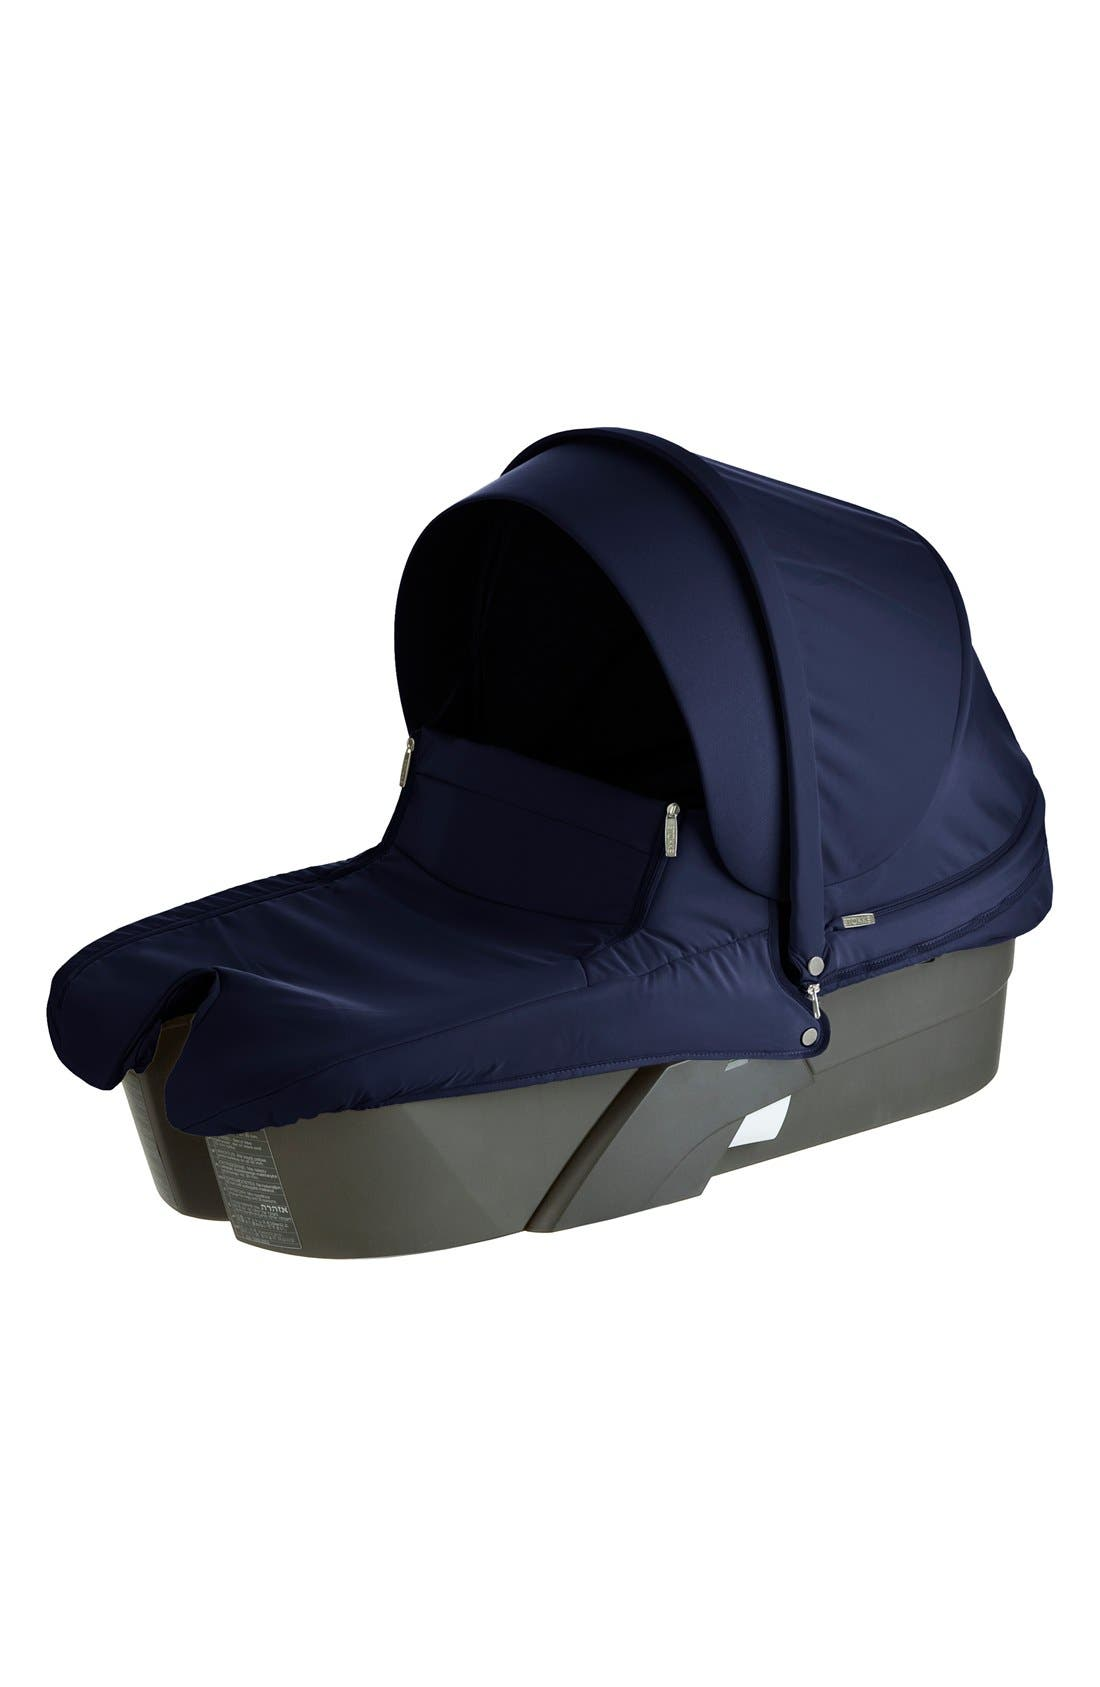 Alternate Image 1 Selected - Stokke Baby 'Xplory®' Carry Cot